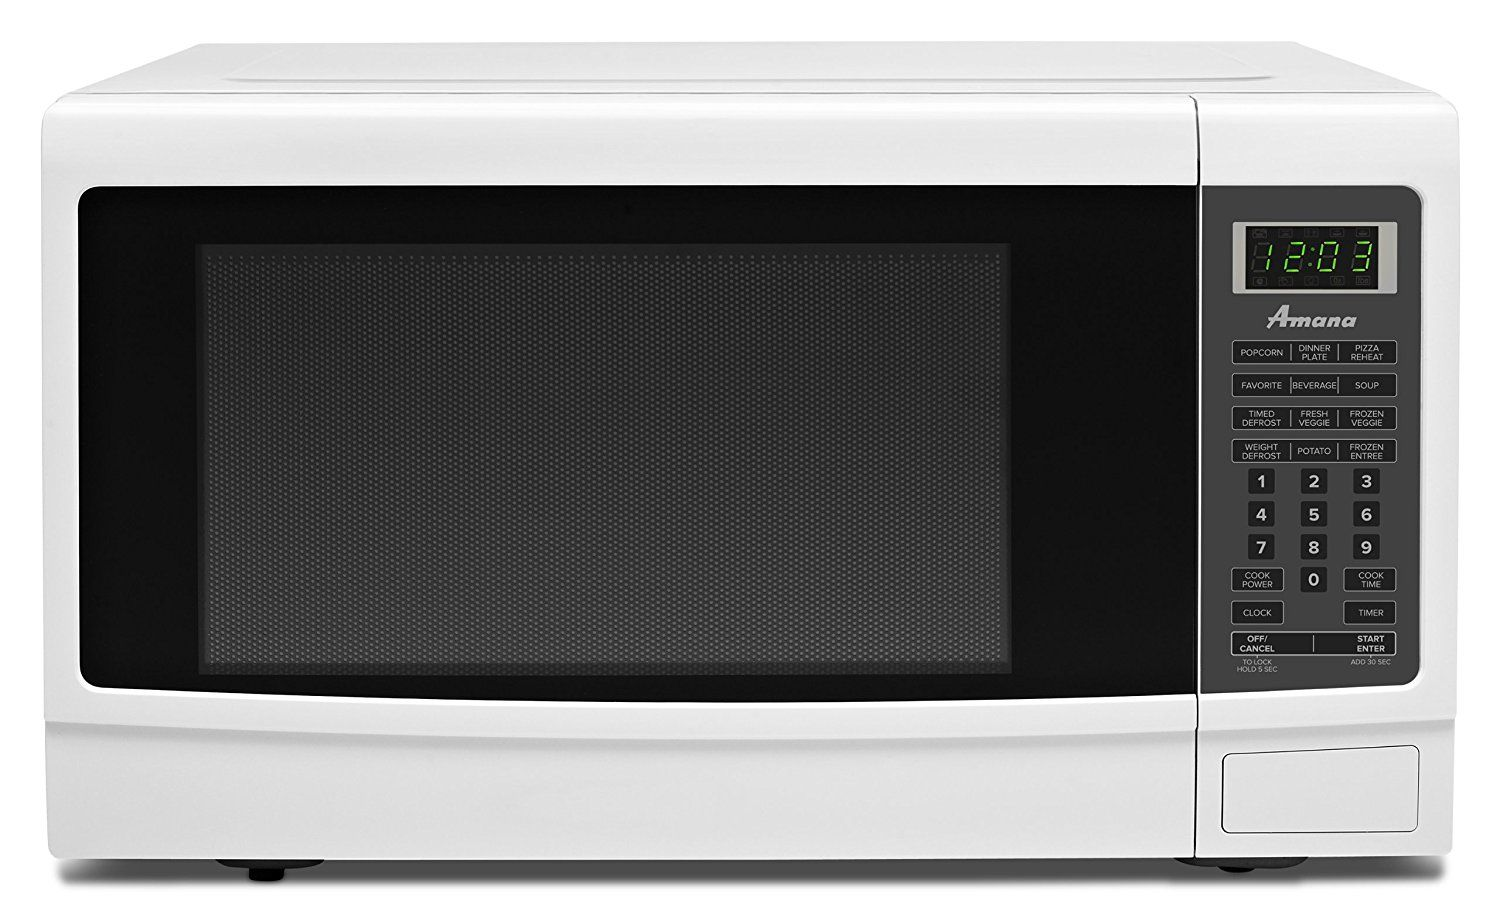 Amana 1 6 Cu Ft Countertop Microwave Oven Amc2165aw White